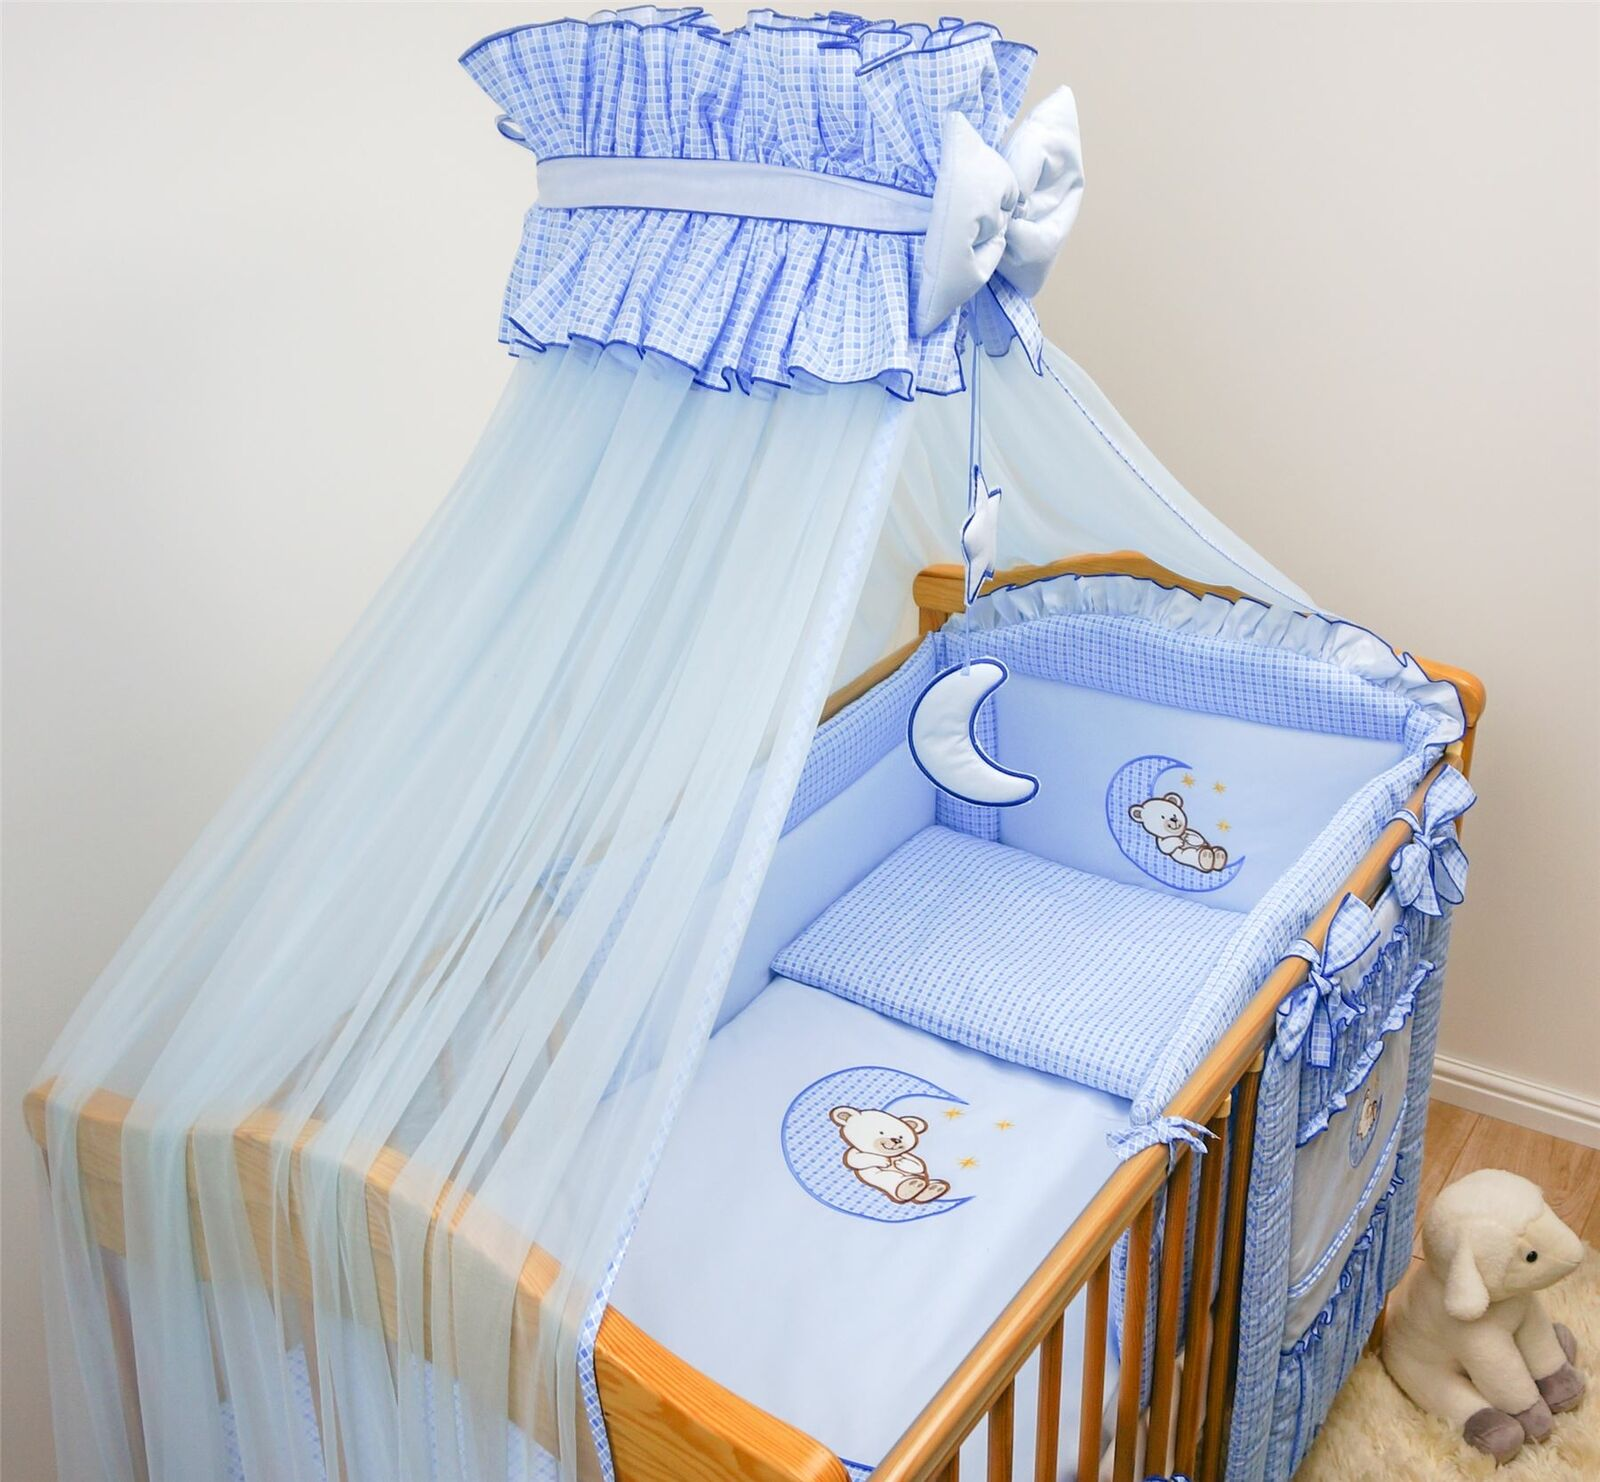 LUXURY BABY CANOPY /DRAPE 480cm WIDTH + HOLDER Fits COT BED - BLUE CHECK STAR